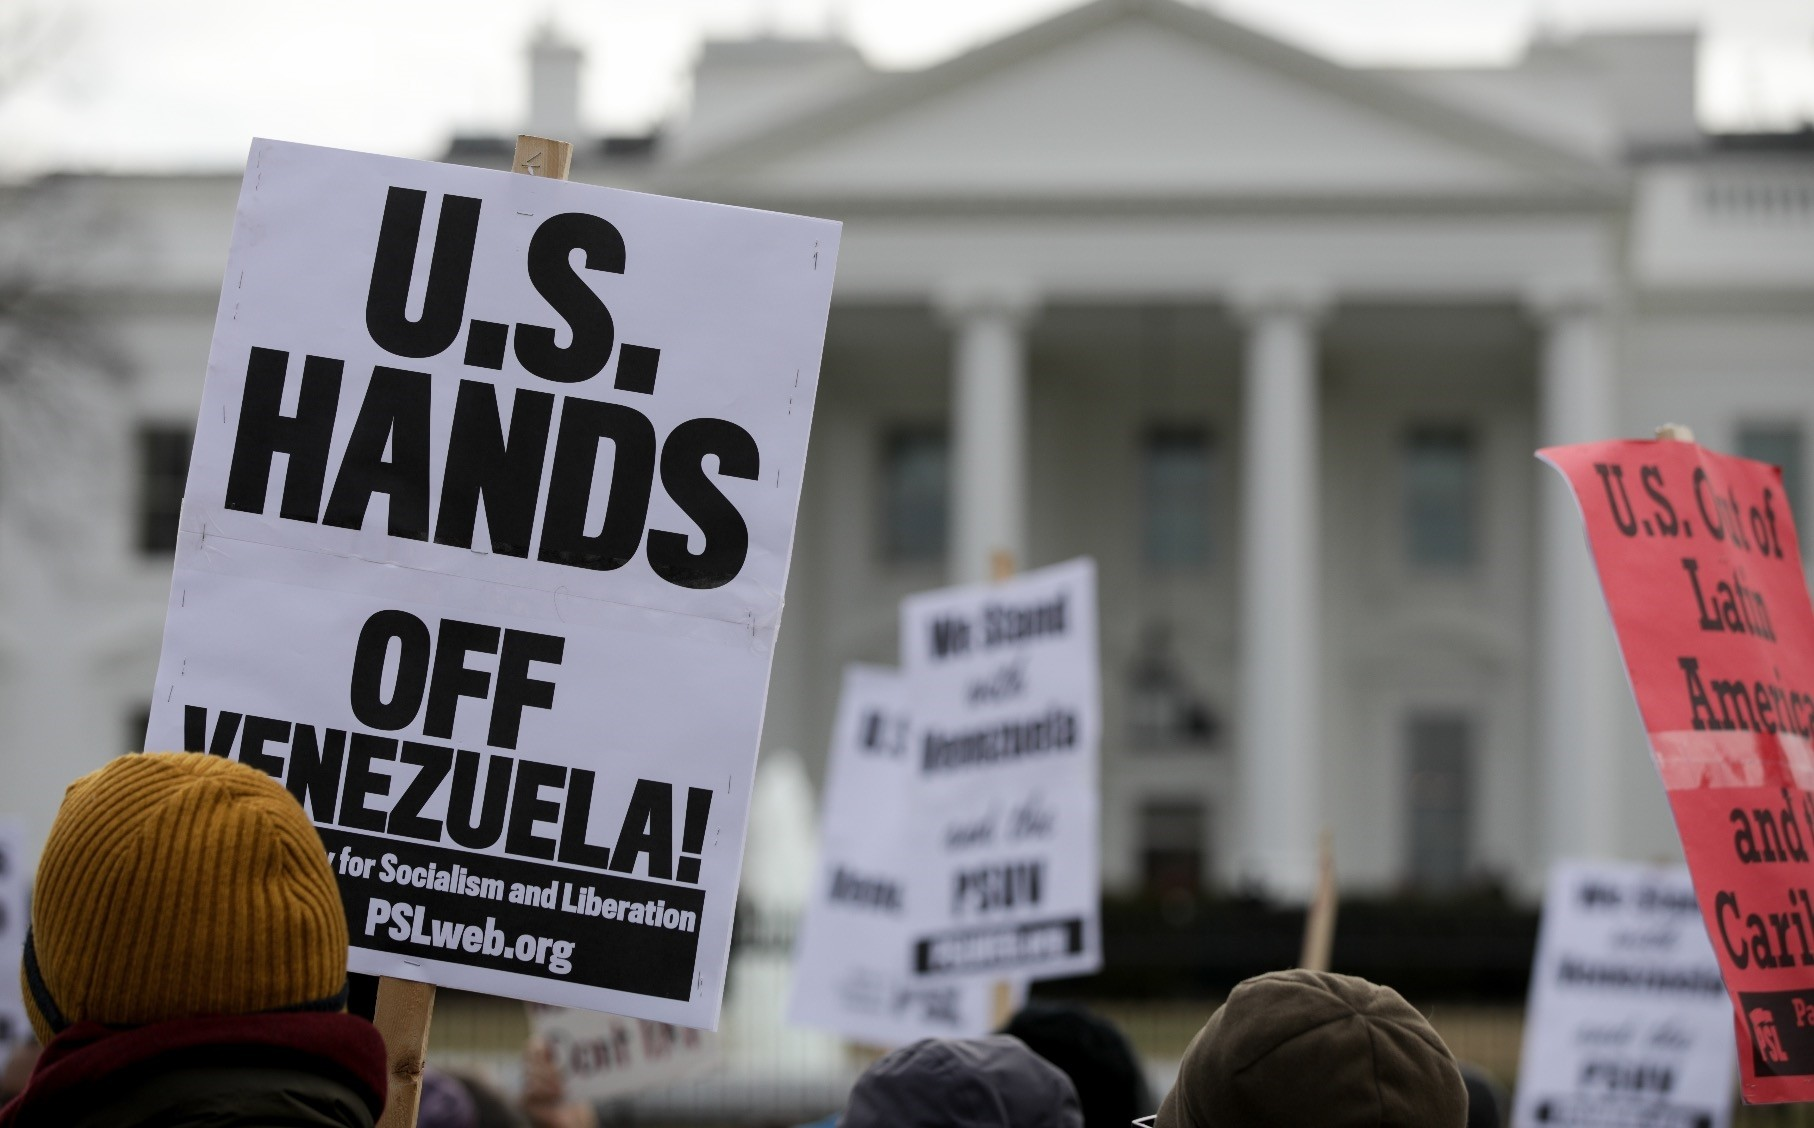 People attend a demonstration against the U.S.u2019s involvement in the coup attempt against Venezuelau2019s elected President Nicolas Maduro, in front of the White House, Jan. 27, 2019.